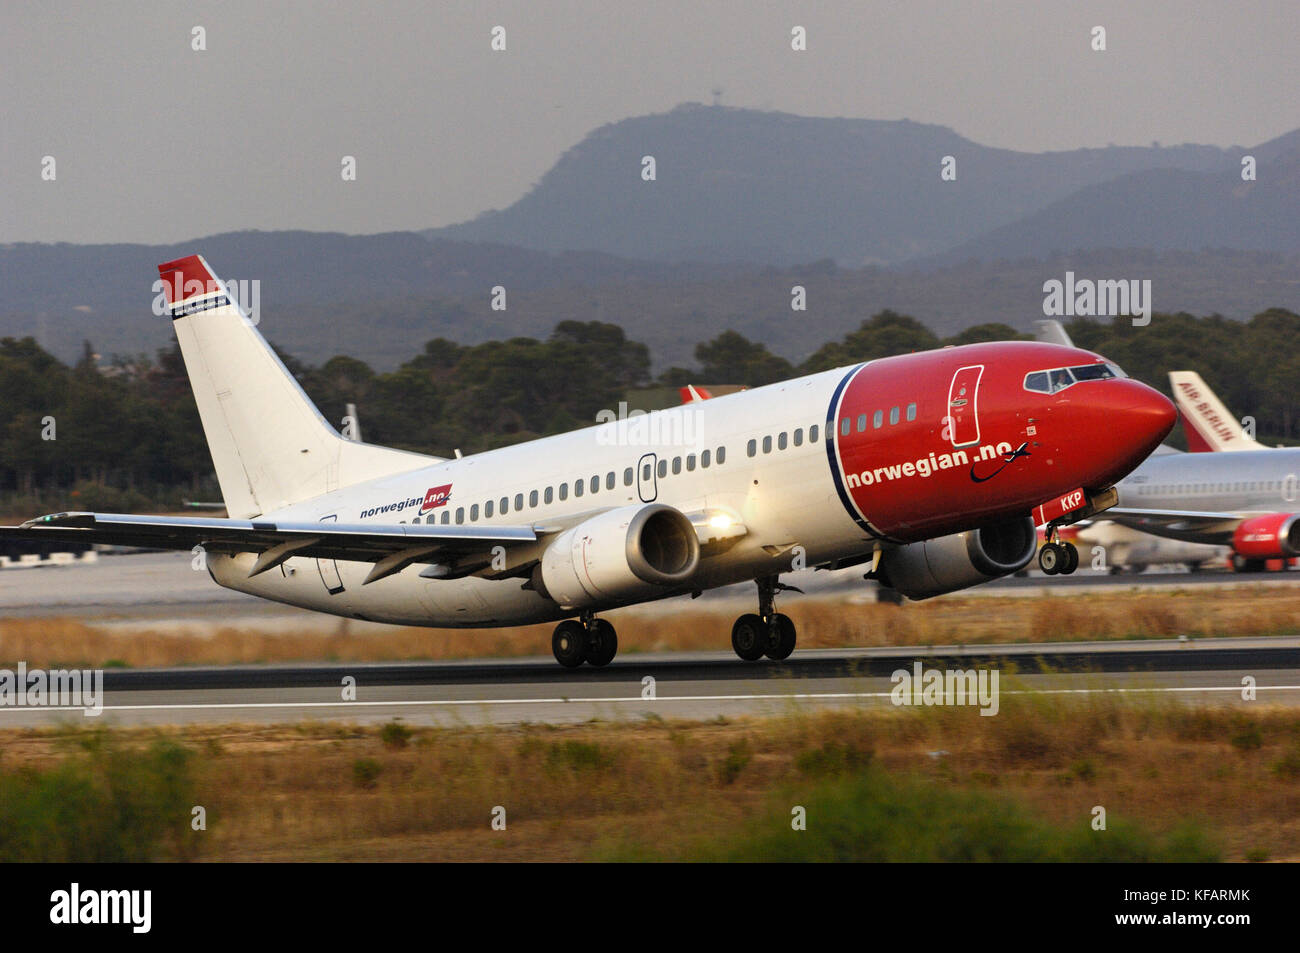 Norwegian Air Shuttle Boeing 737-300, die von Palma International Stockbild